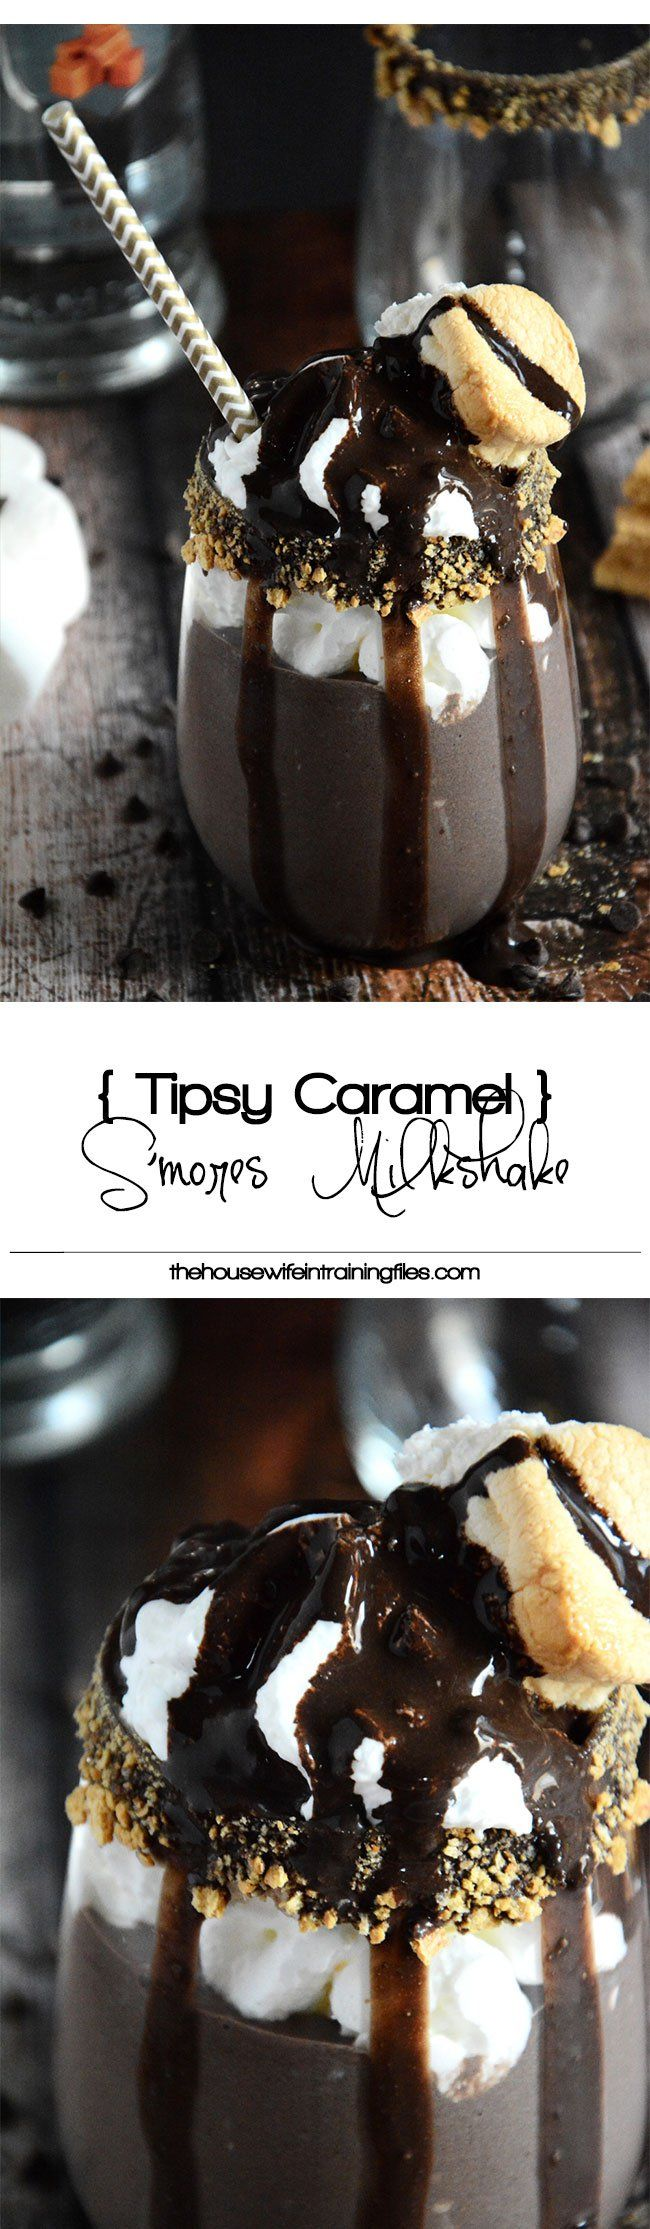 An adult s'mores milkshake updates the campfire favorite but in a dessert cocktail form! Toasted marshmallows, caramel vodka & a chocolate drizzle make this a rich and creamy treat!